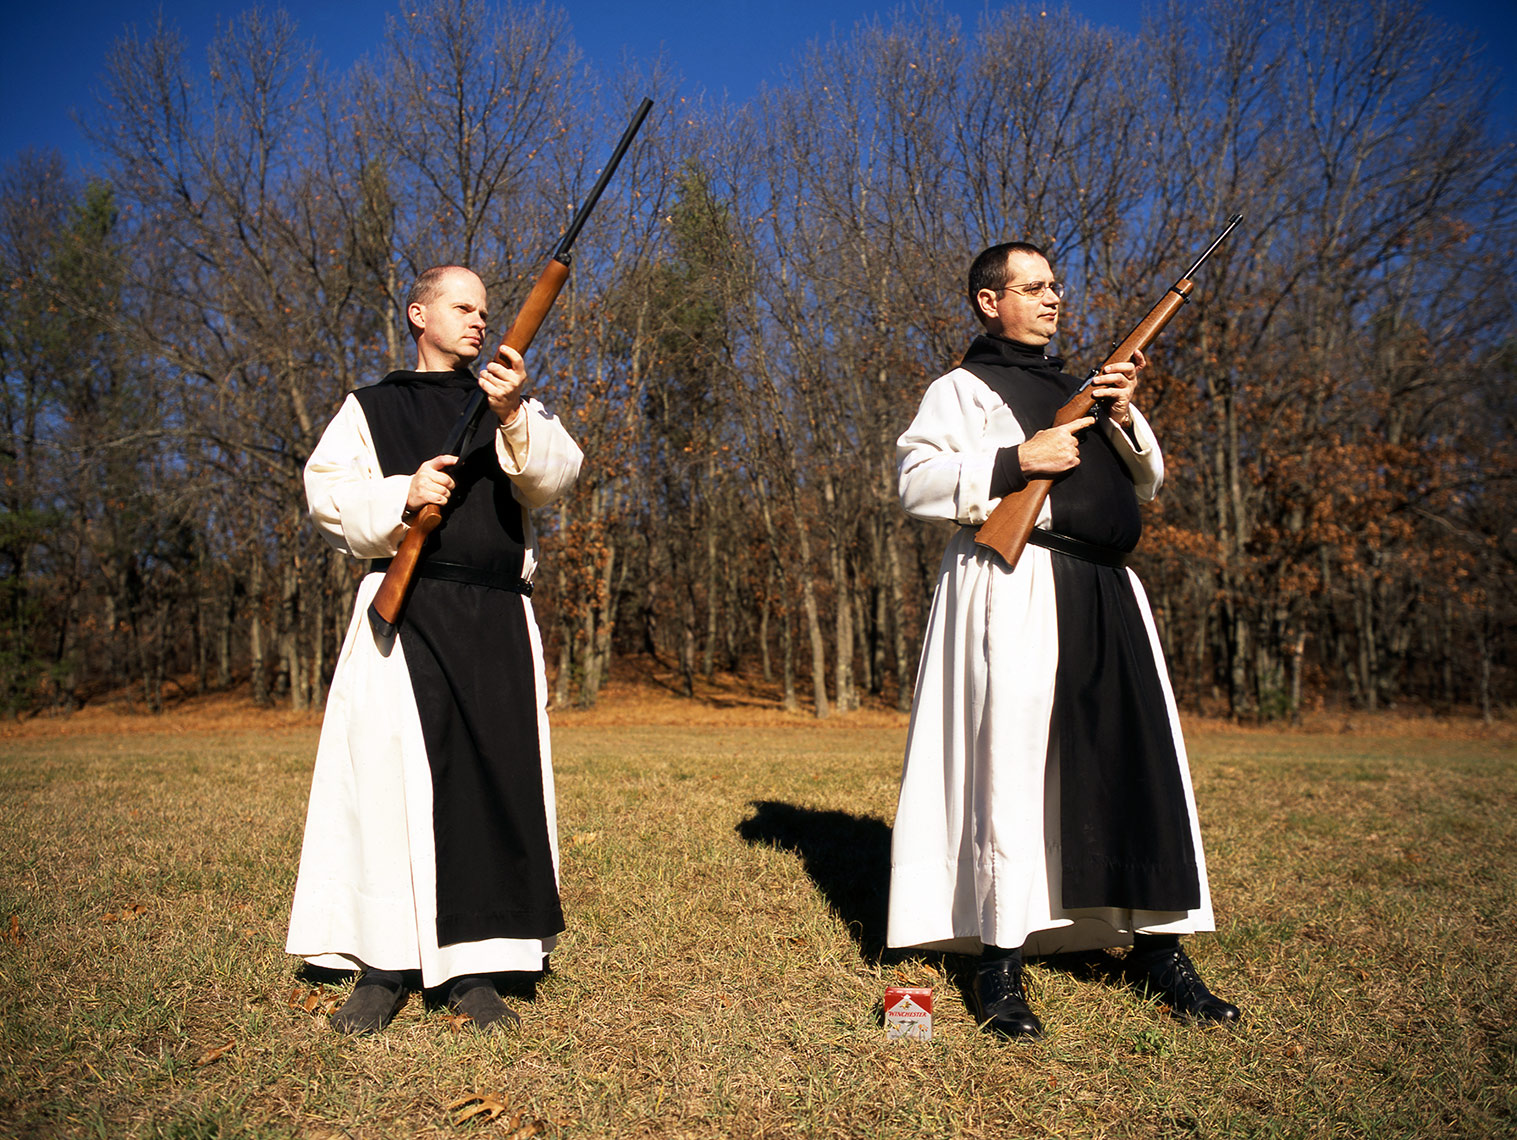 W-Monks-with-Guns